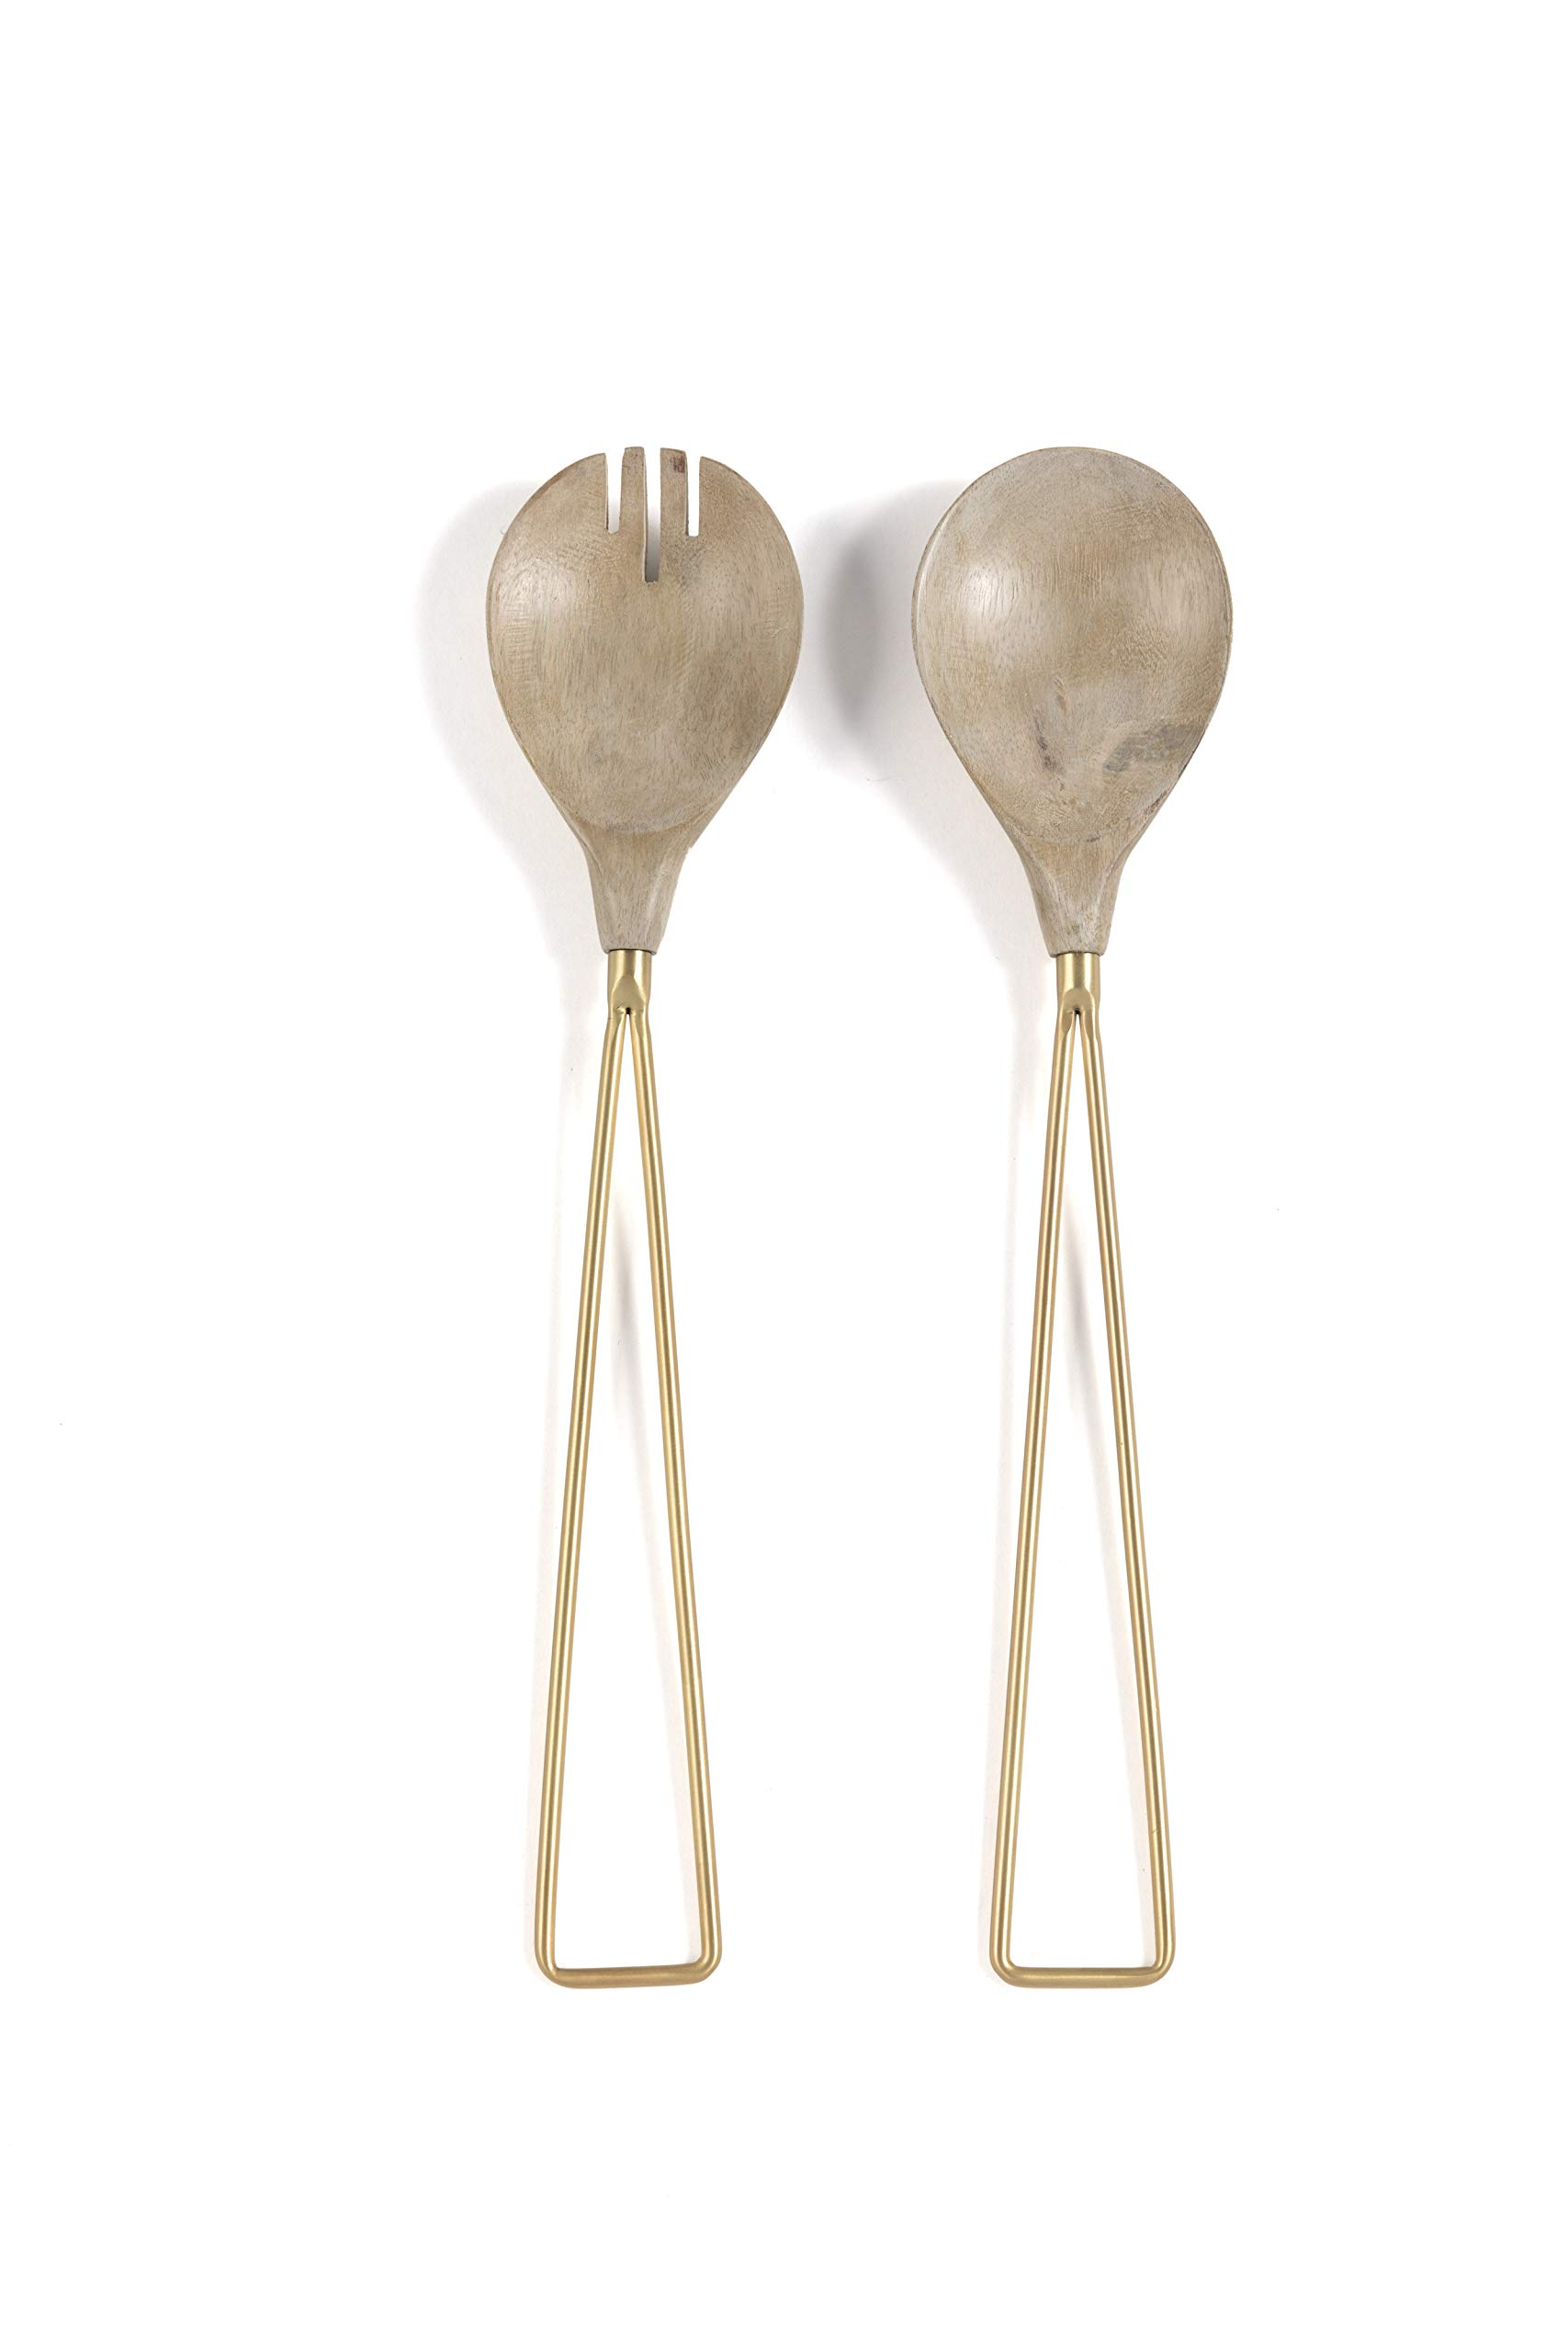 Shiraleah Home 11-AS-001GO Orion SALAD SERVERS One Size Gold